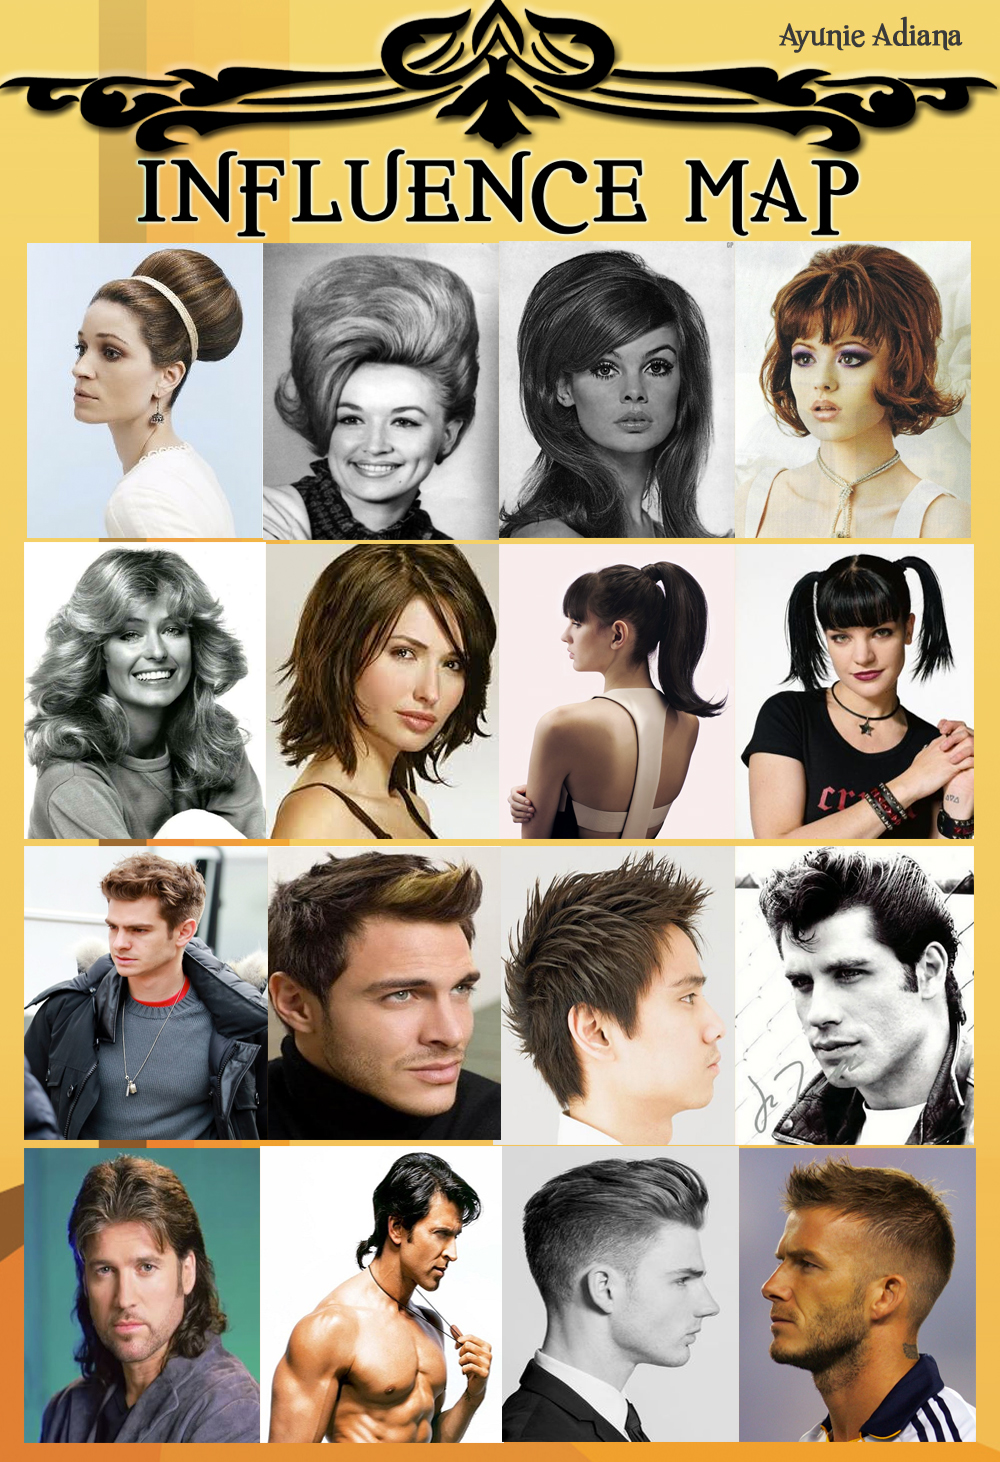 ayunie adiana: adaptation a: hairstyles through the years